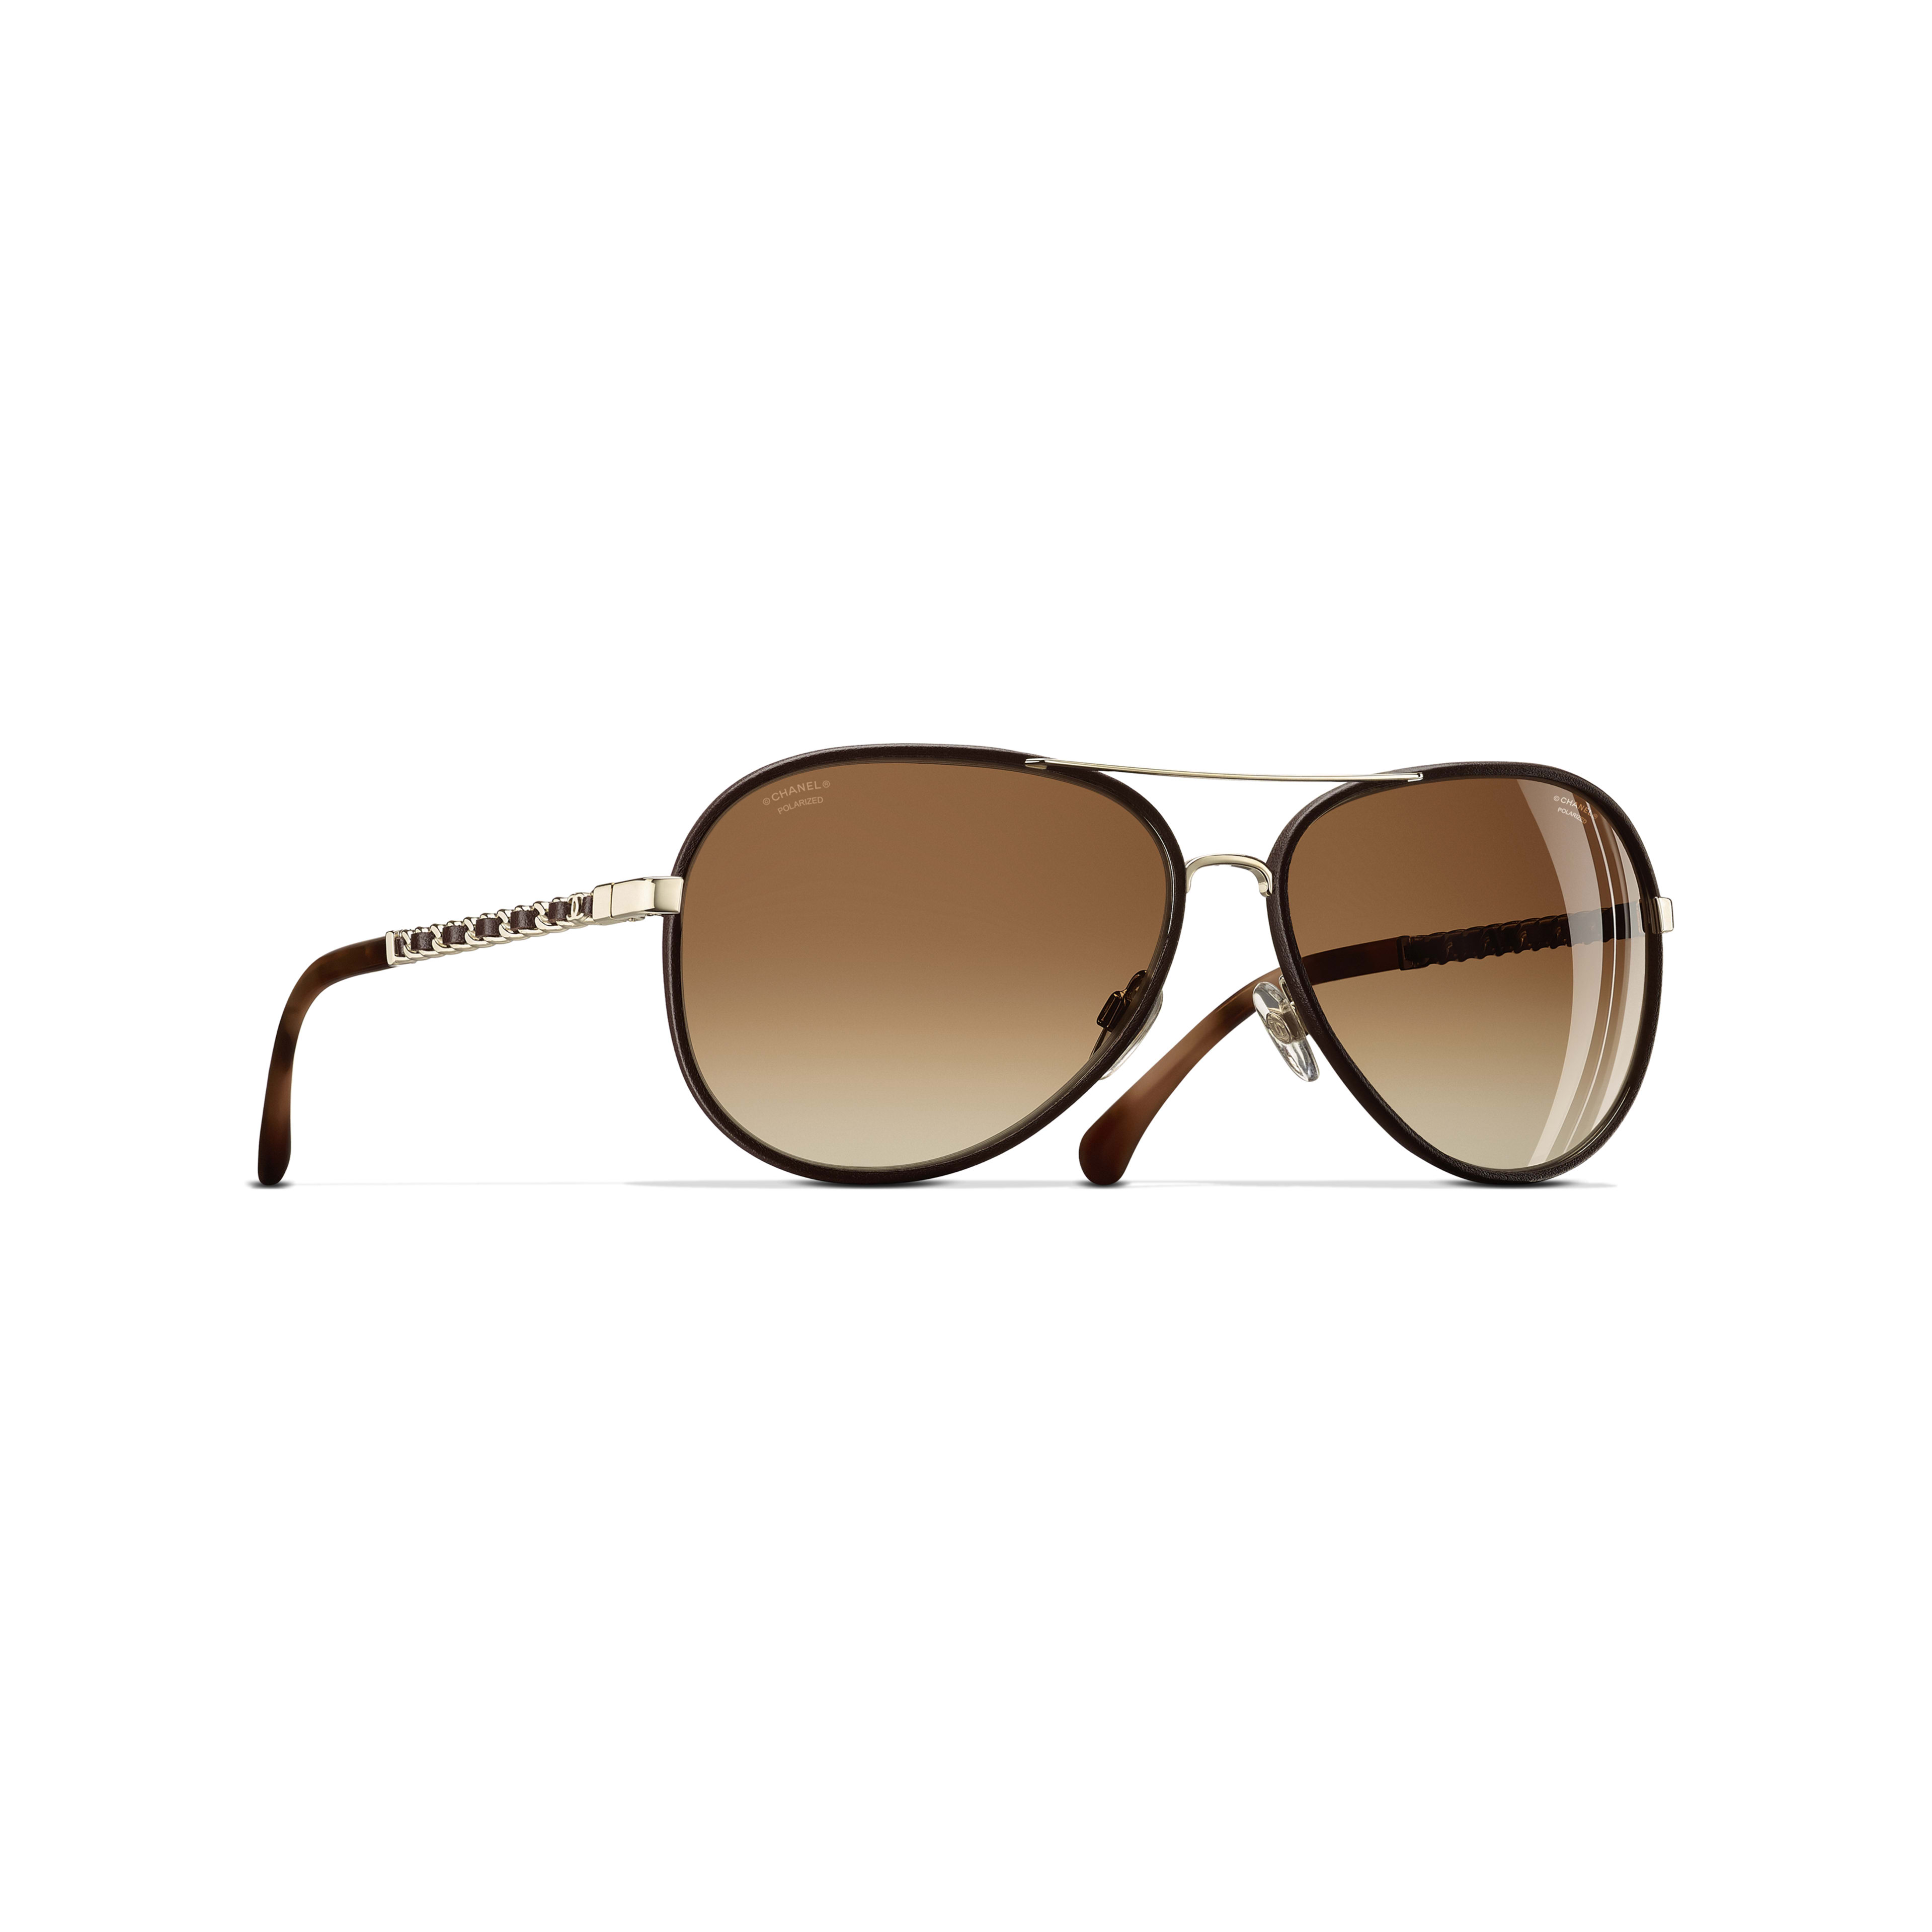 Pilot Sunglasses - Gold & Brown - Metal & Calfskin - CHANEL - Default view - see standard sized version